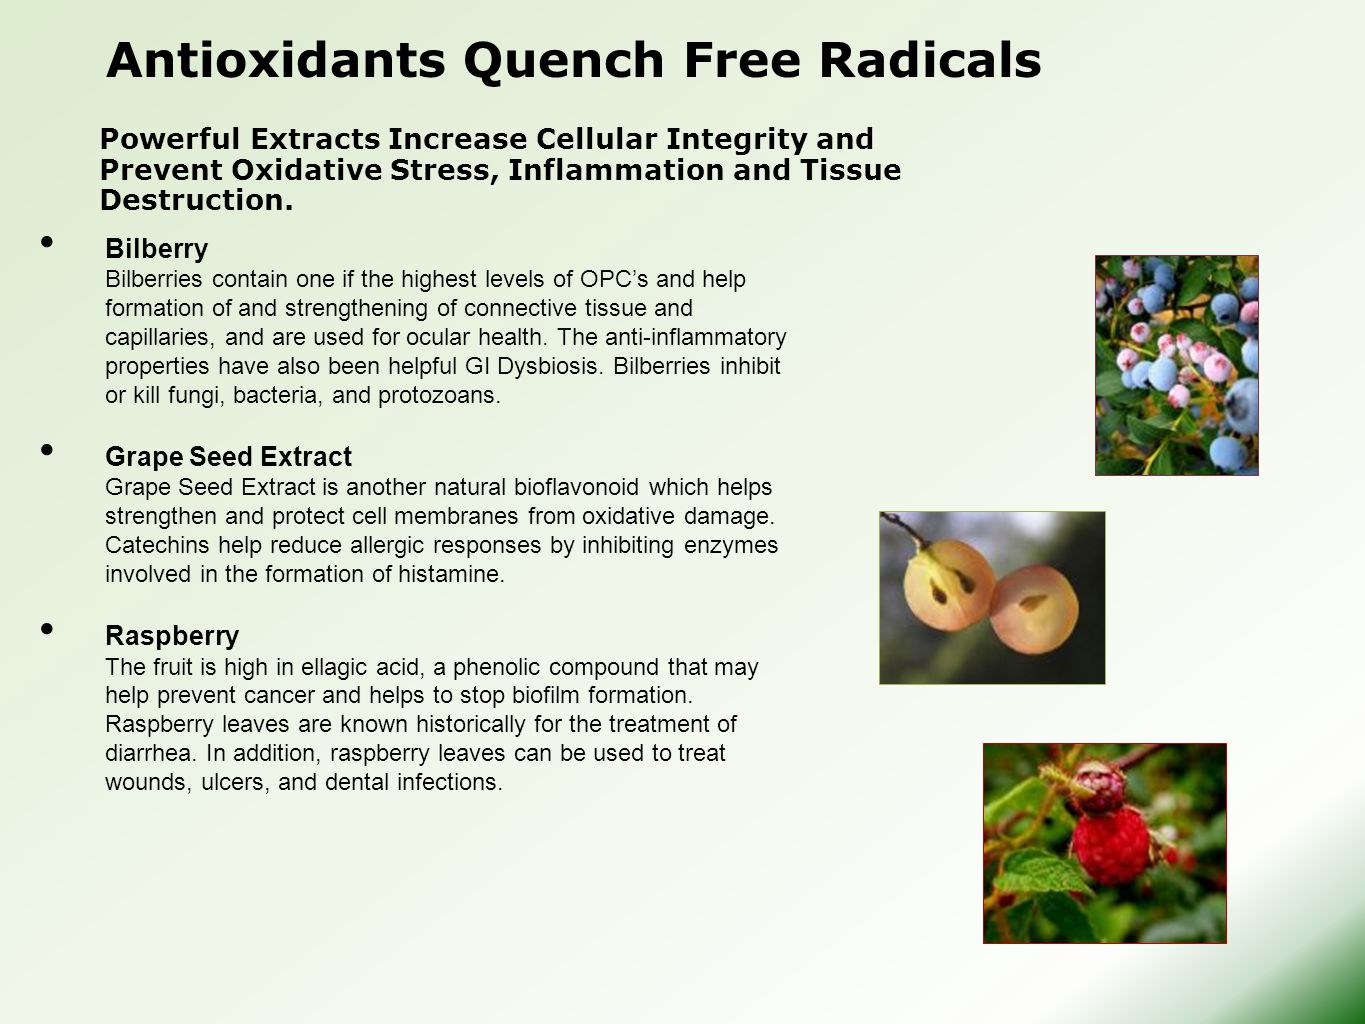 Antioxidants Quench Free Radicals Bilberry Bilberries contain one if the highest levels of OPC's and help formation of and strengthening of connective tissue and capillaries, and are used for ocular health.